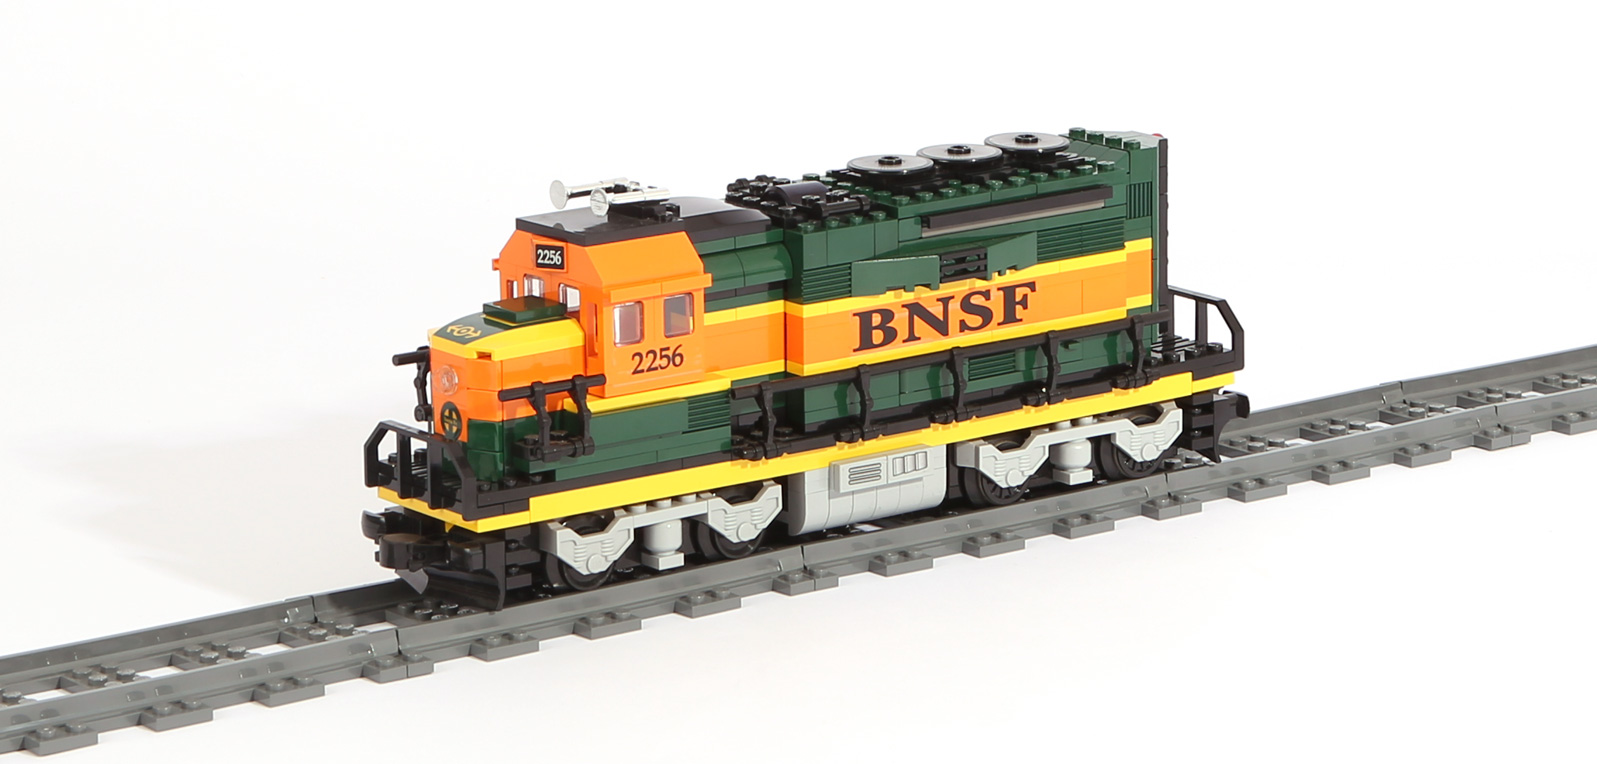 BSNF Burlington Northern Santa Fe – Original LEGO Set 10133